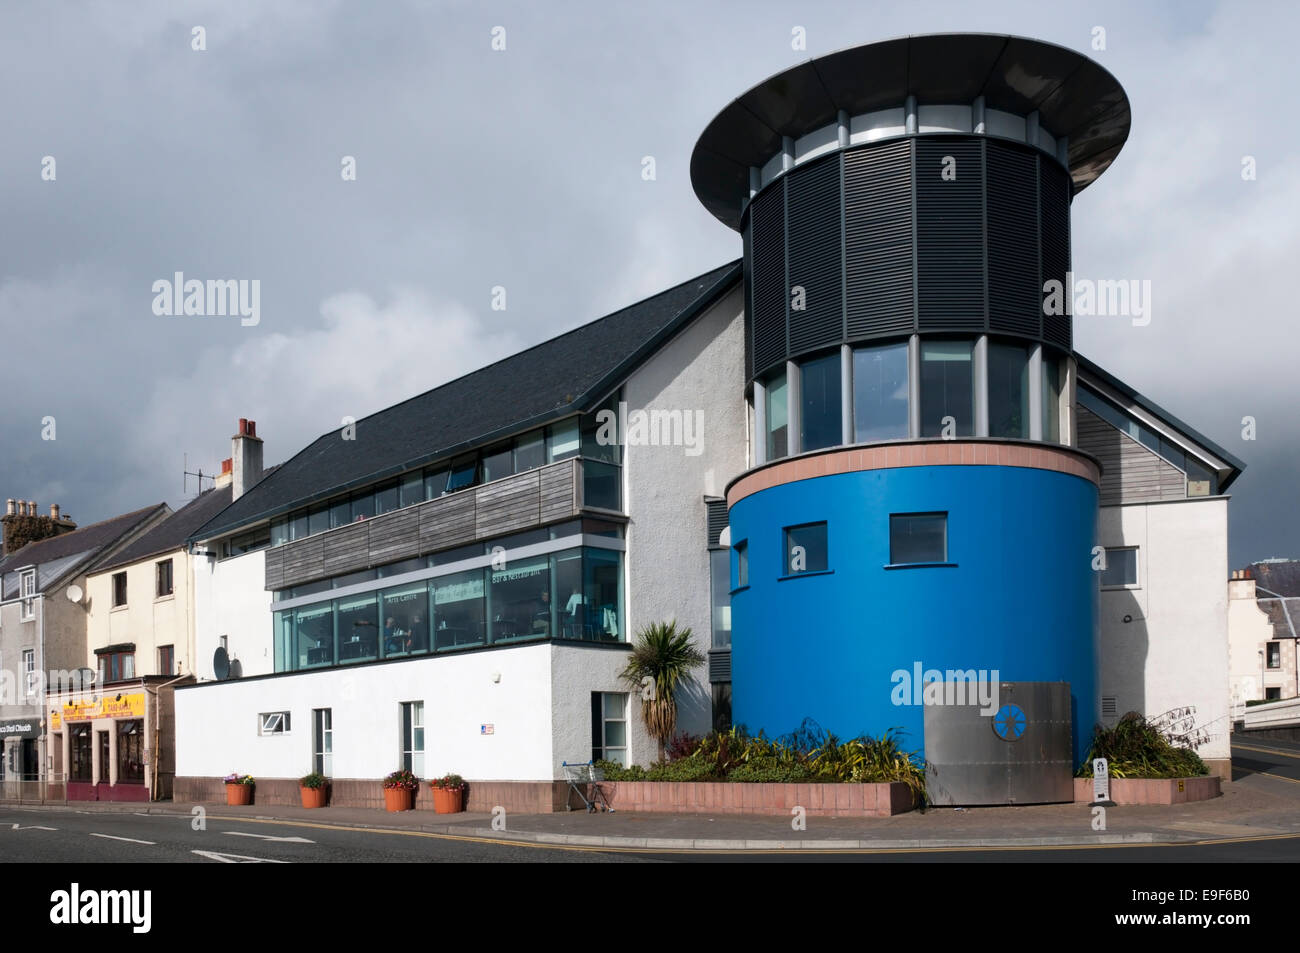 The An Lanntair Arts Centre in Stornoway, Isle of Lewis. - Stock Image